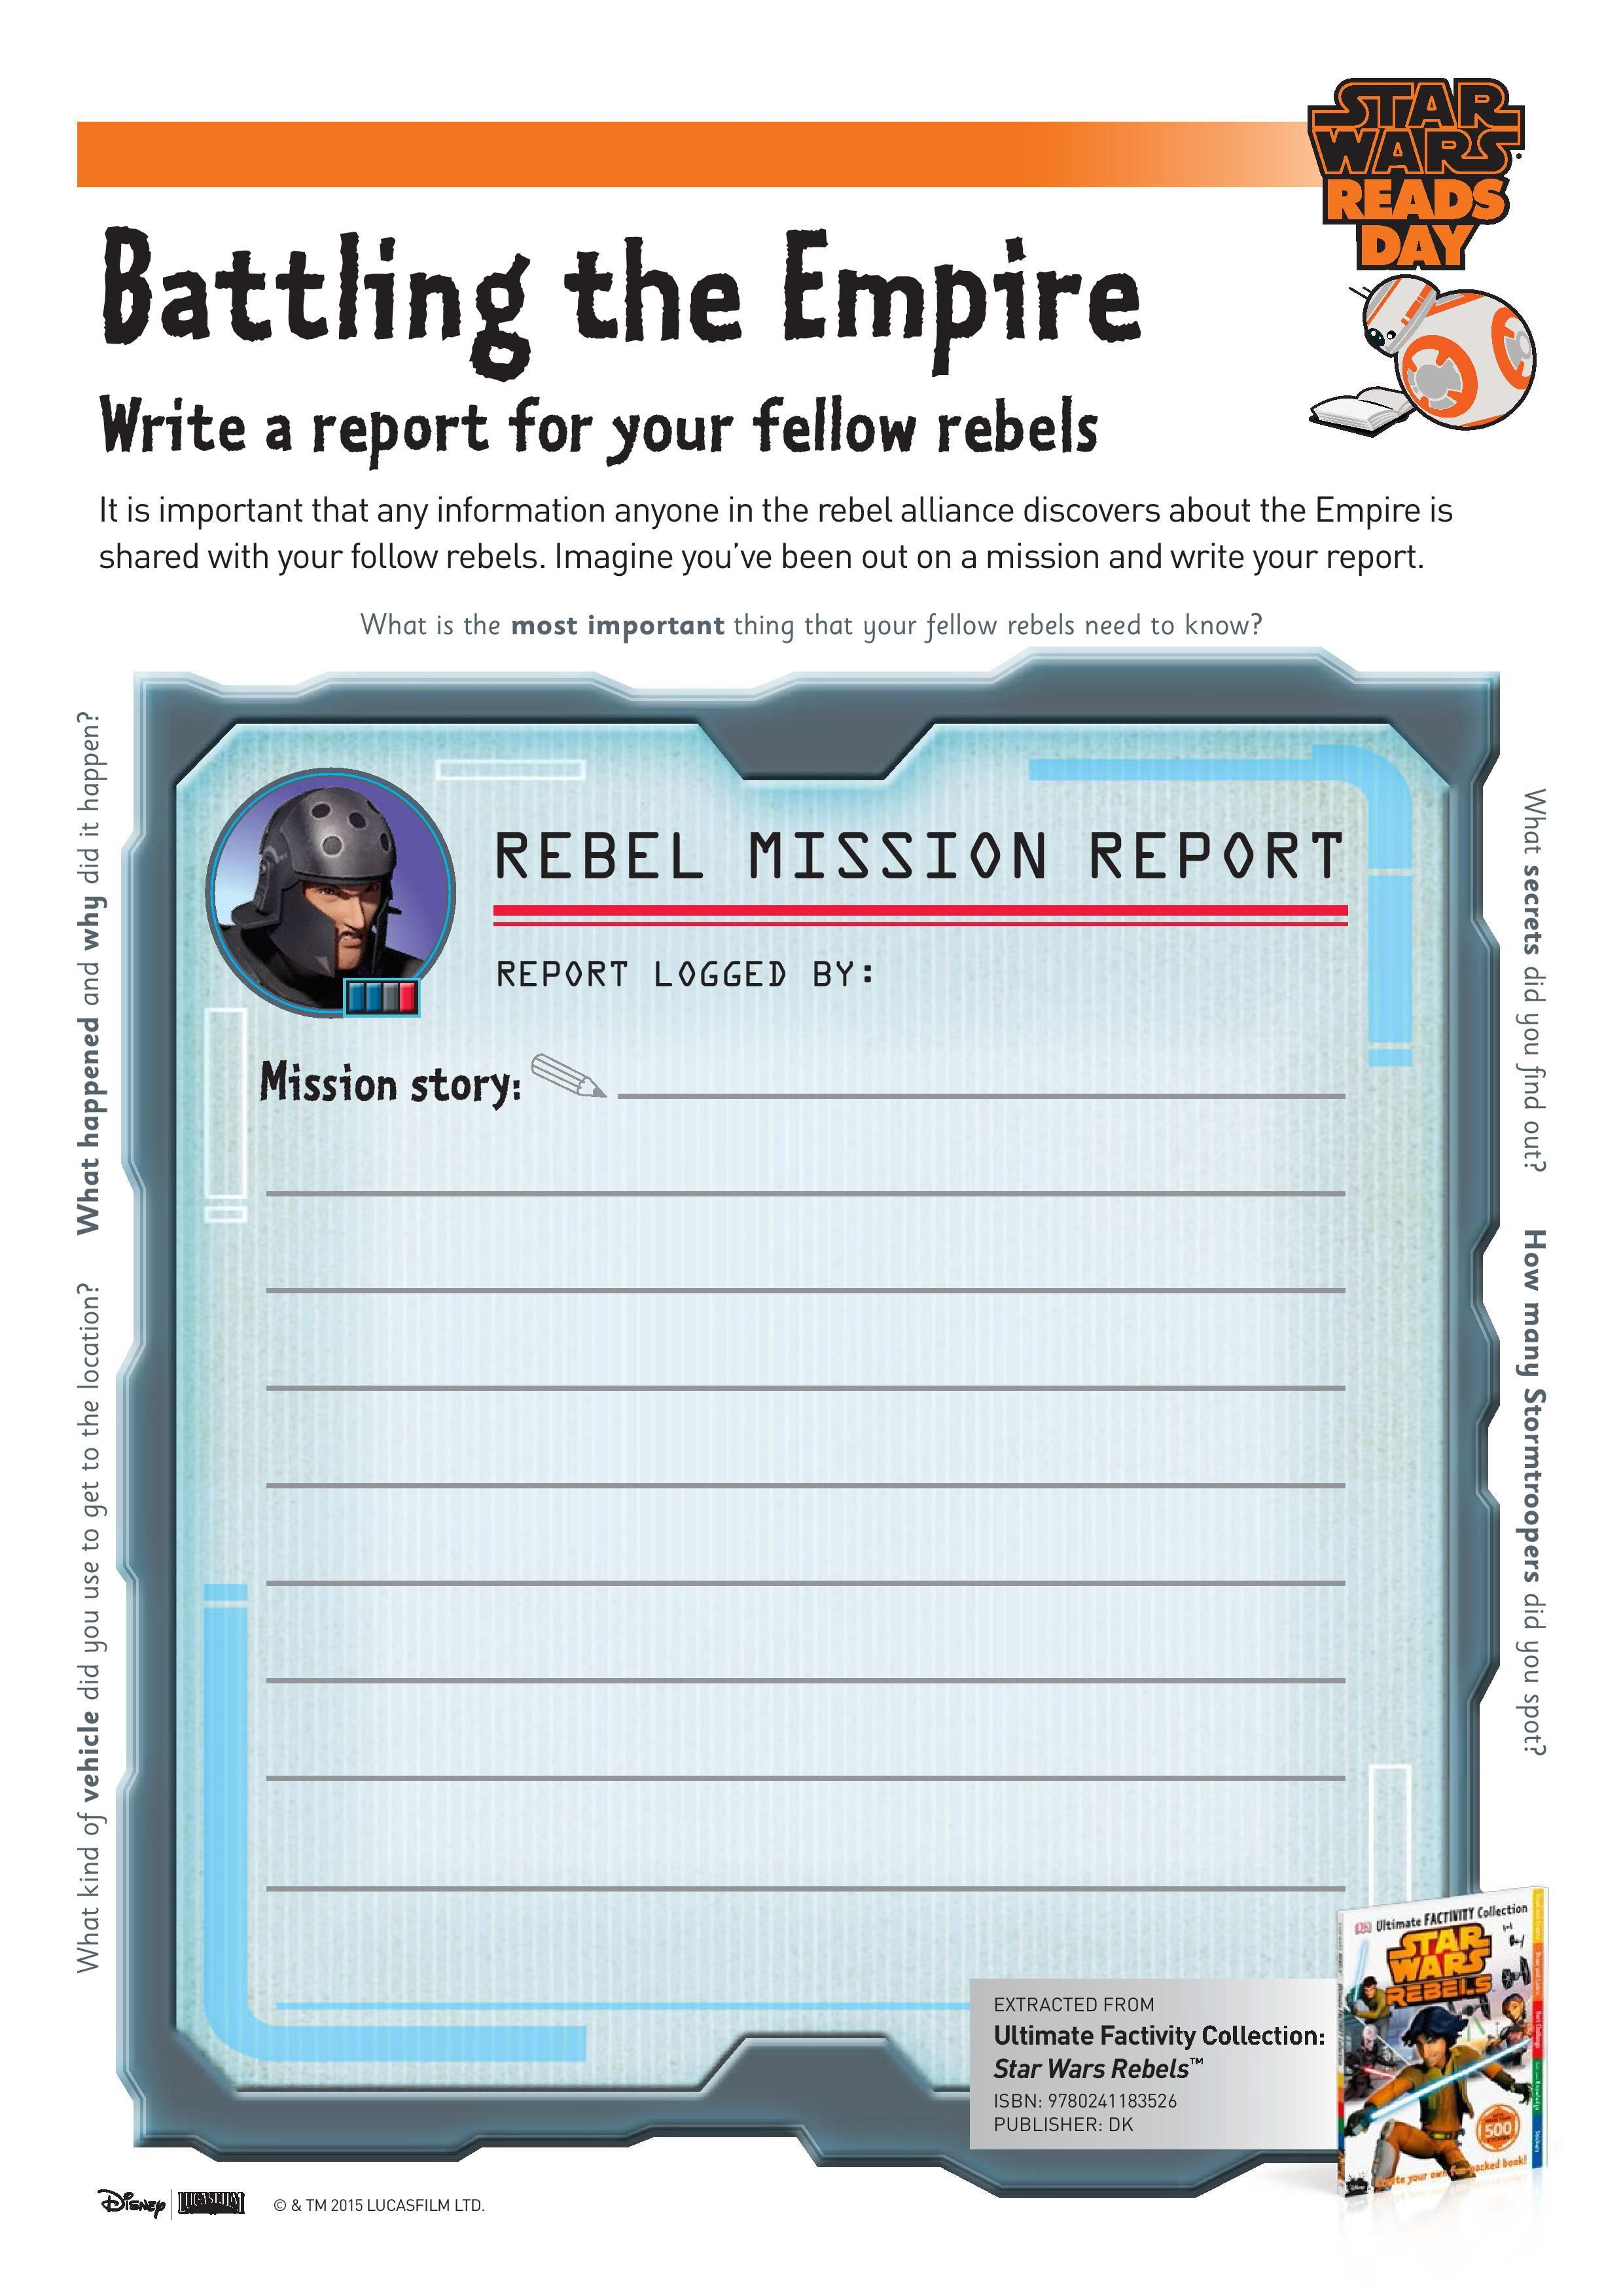 Printable Star Wars Activity Sheets In The Playroom Star Wars Activities Star Wars Classroom Star Wars Activity Sheets [ 3508 x 2480 Pixel ]